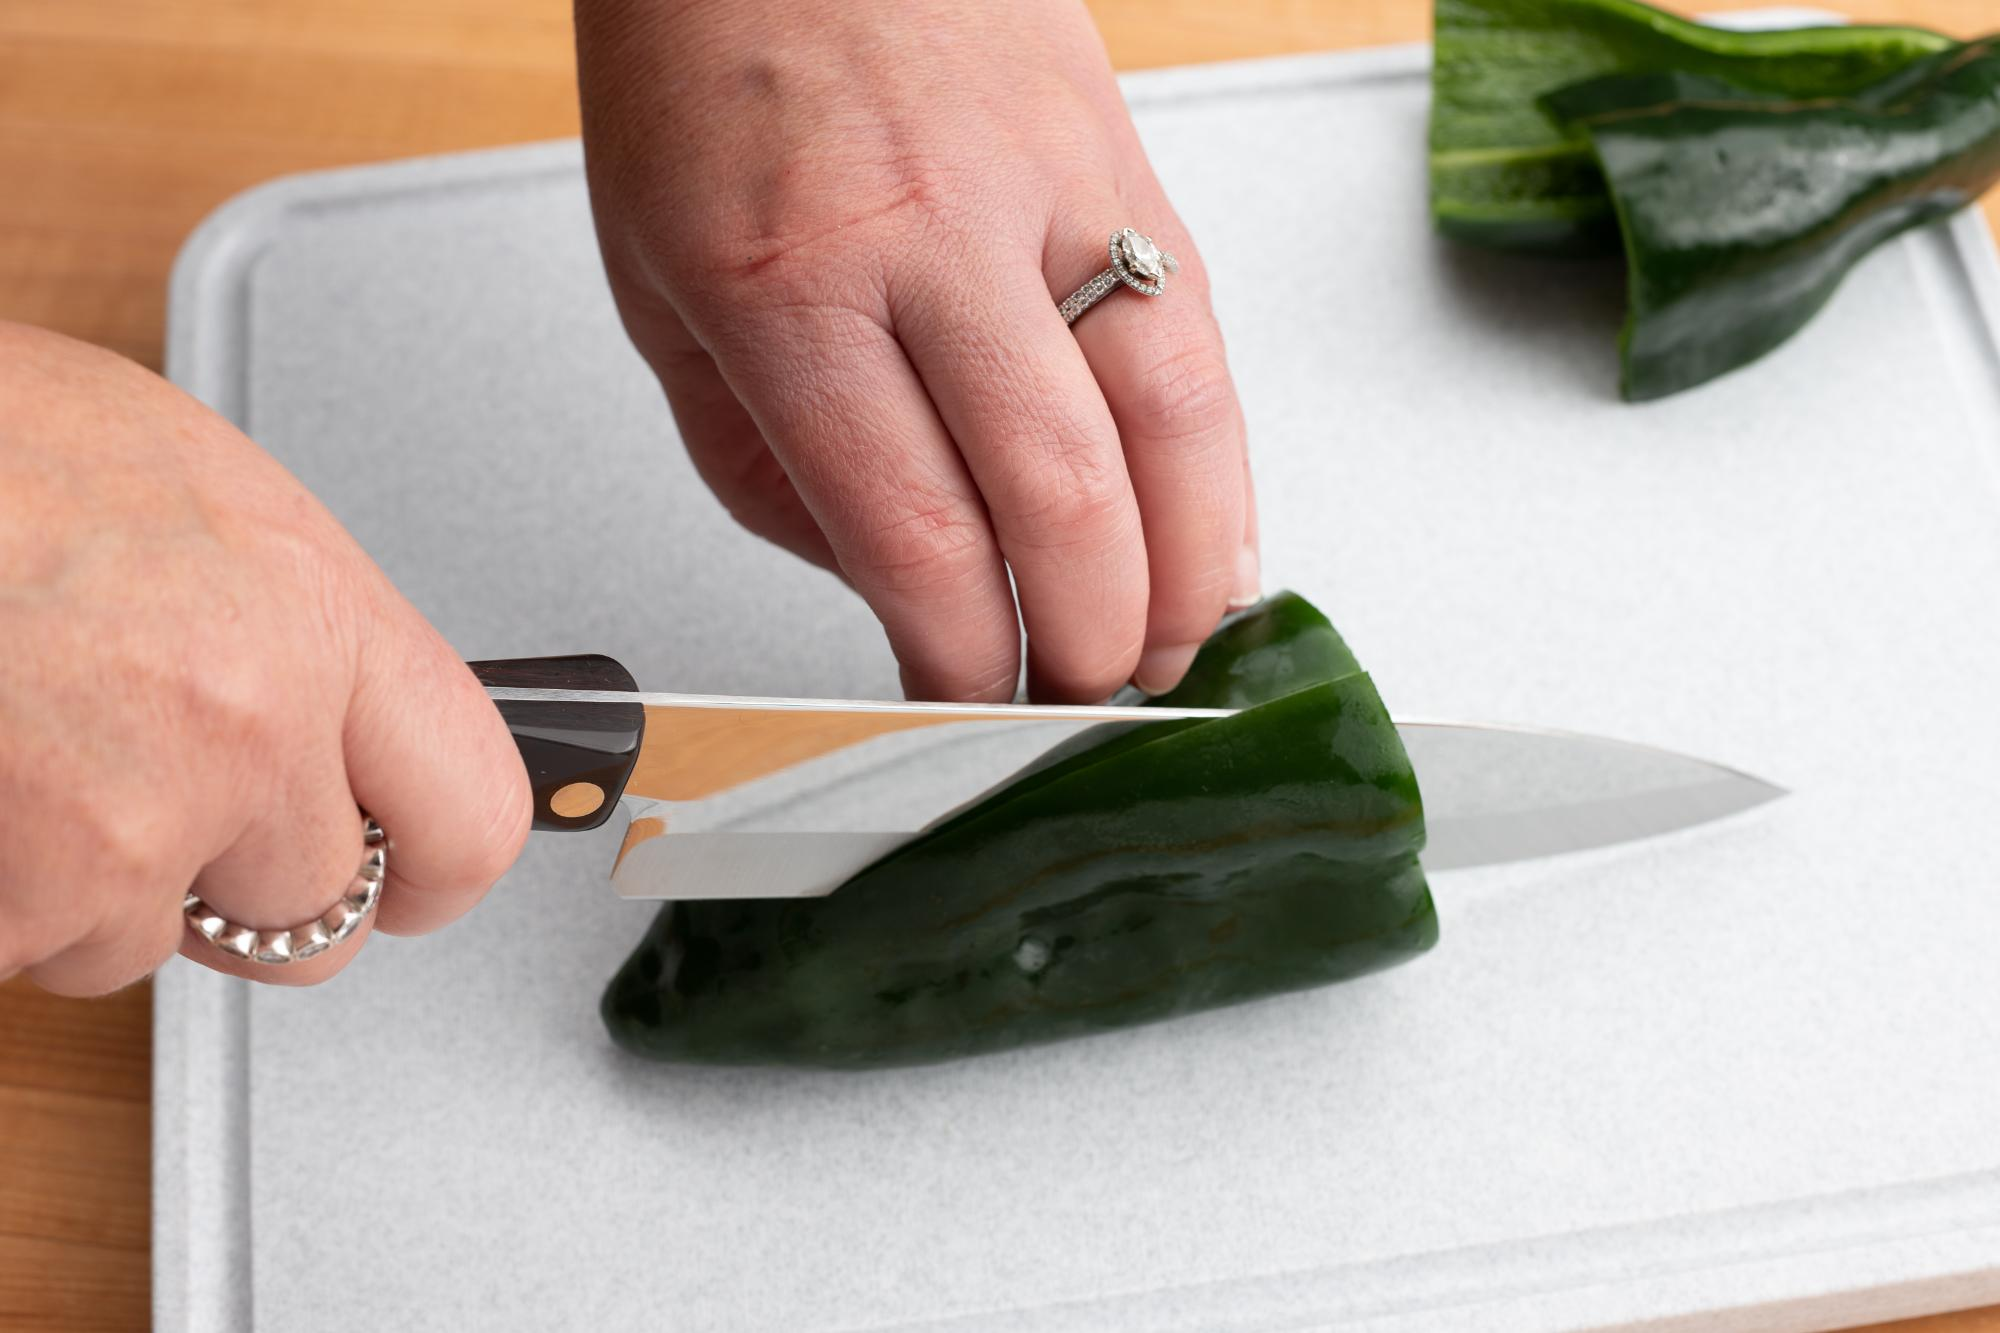 Using the Petite Chef to slice the poblano peppers.